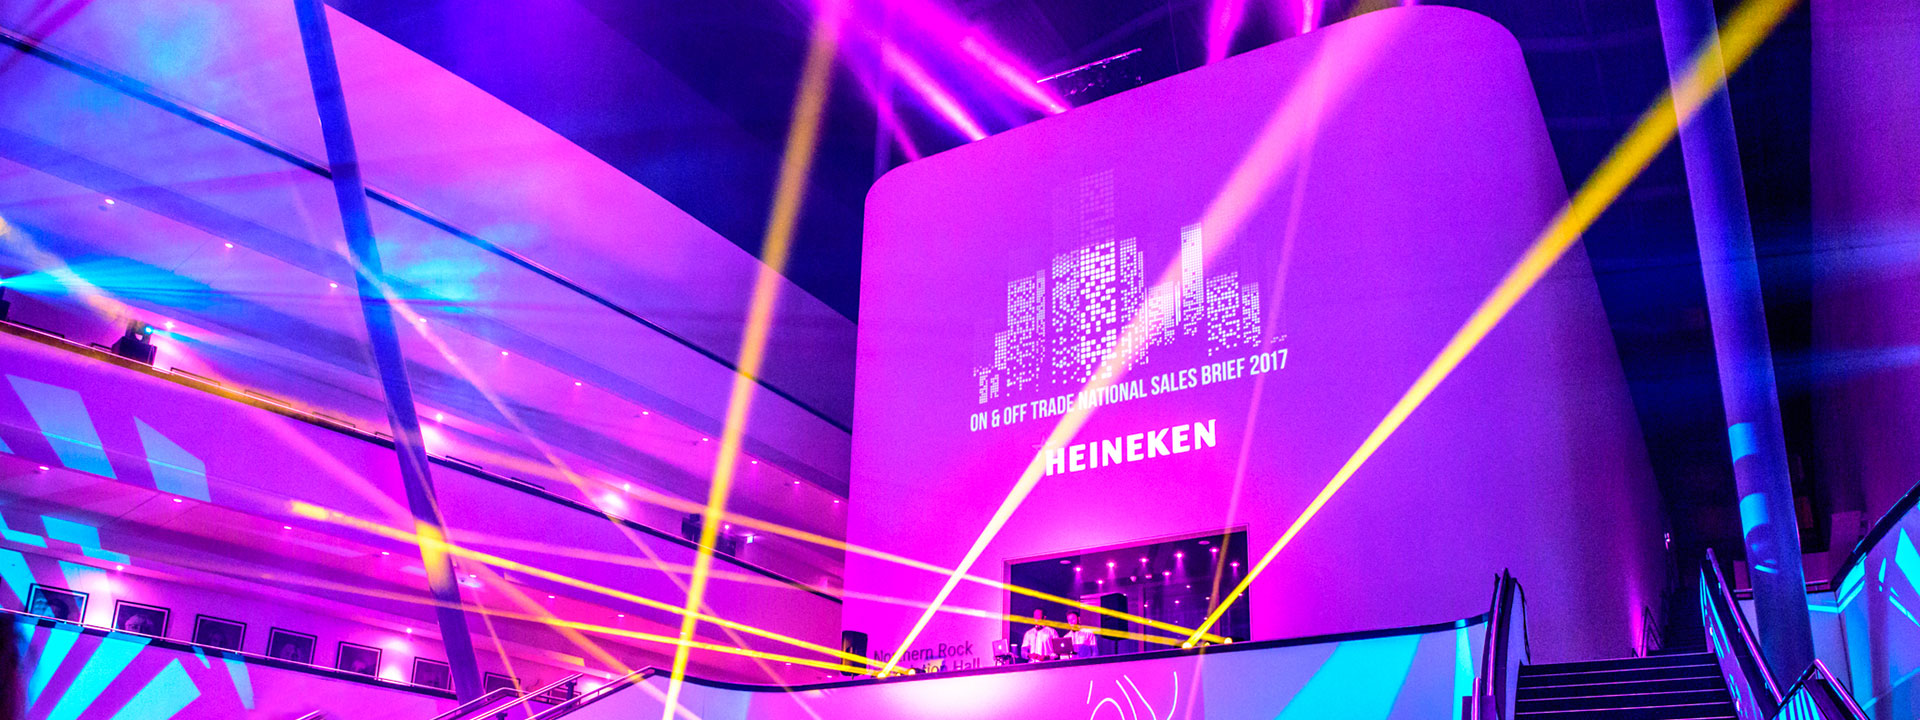 2017 On & Off Trade National Sales Brief, Heineken